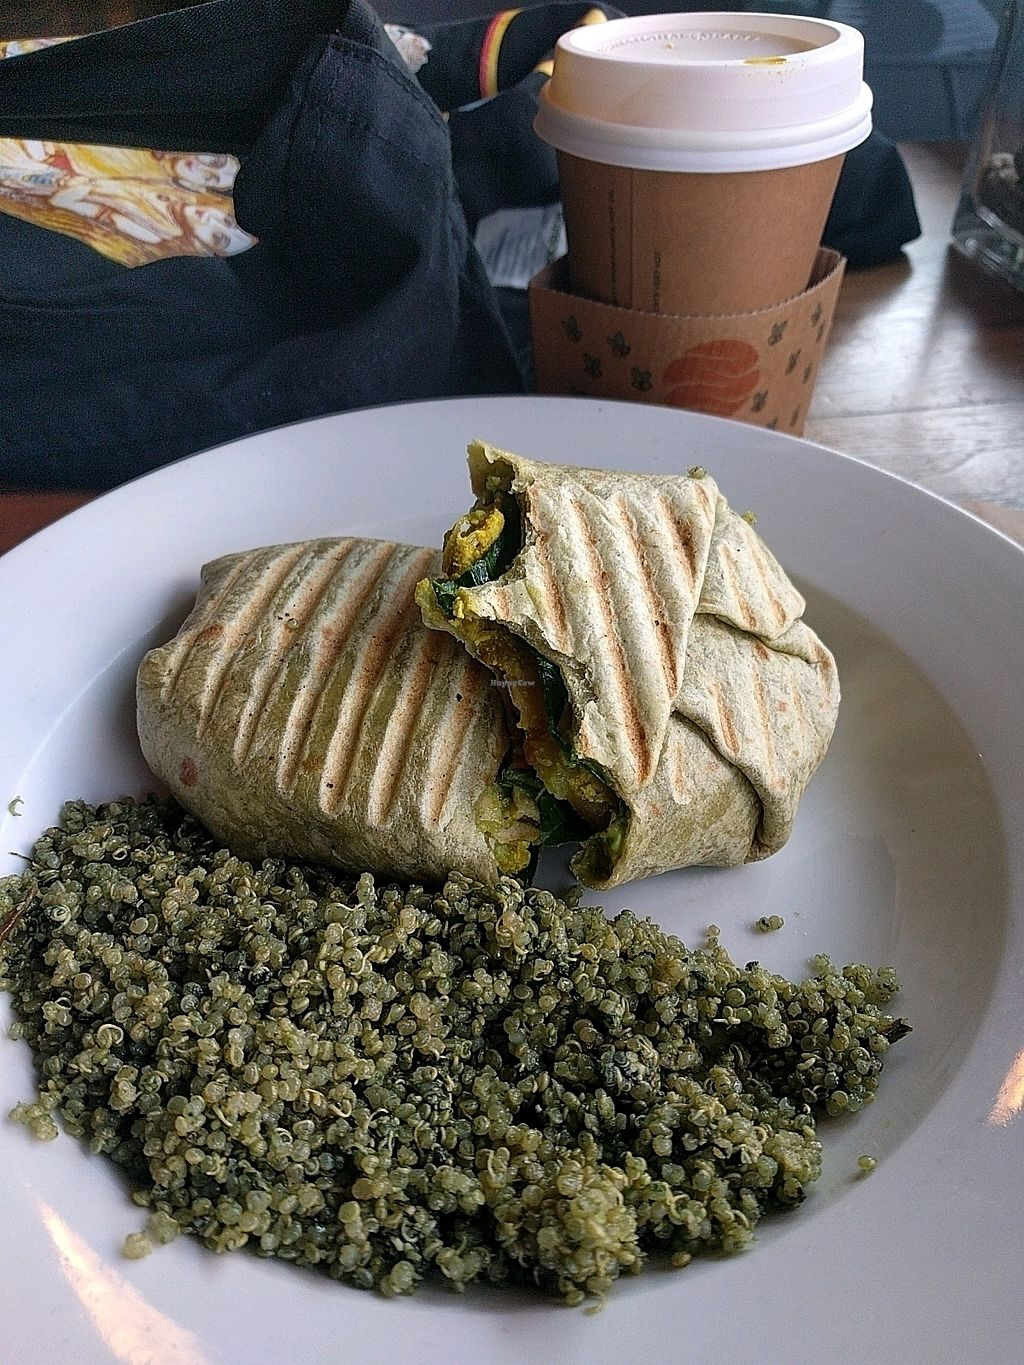 """Photo of The Hive  by <a href=""""/members/profile/MatthewVBogusz"""">MatthewVBogusz</a> <br/>right start breakfast burrito <br/> March 18, 2018  - <a href='/contact/abuse/image/57409/372576'>Report</a>"""